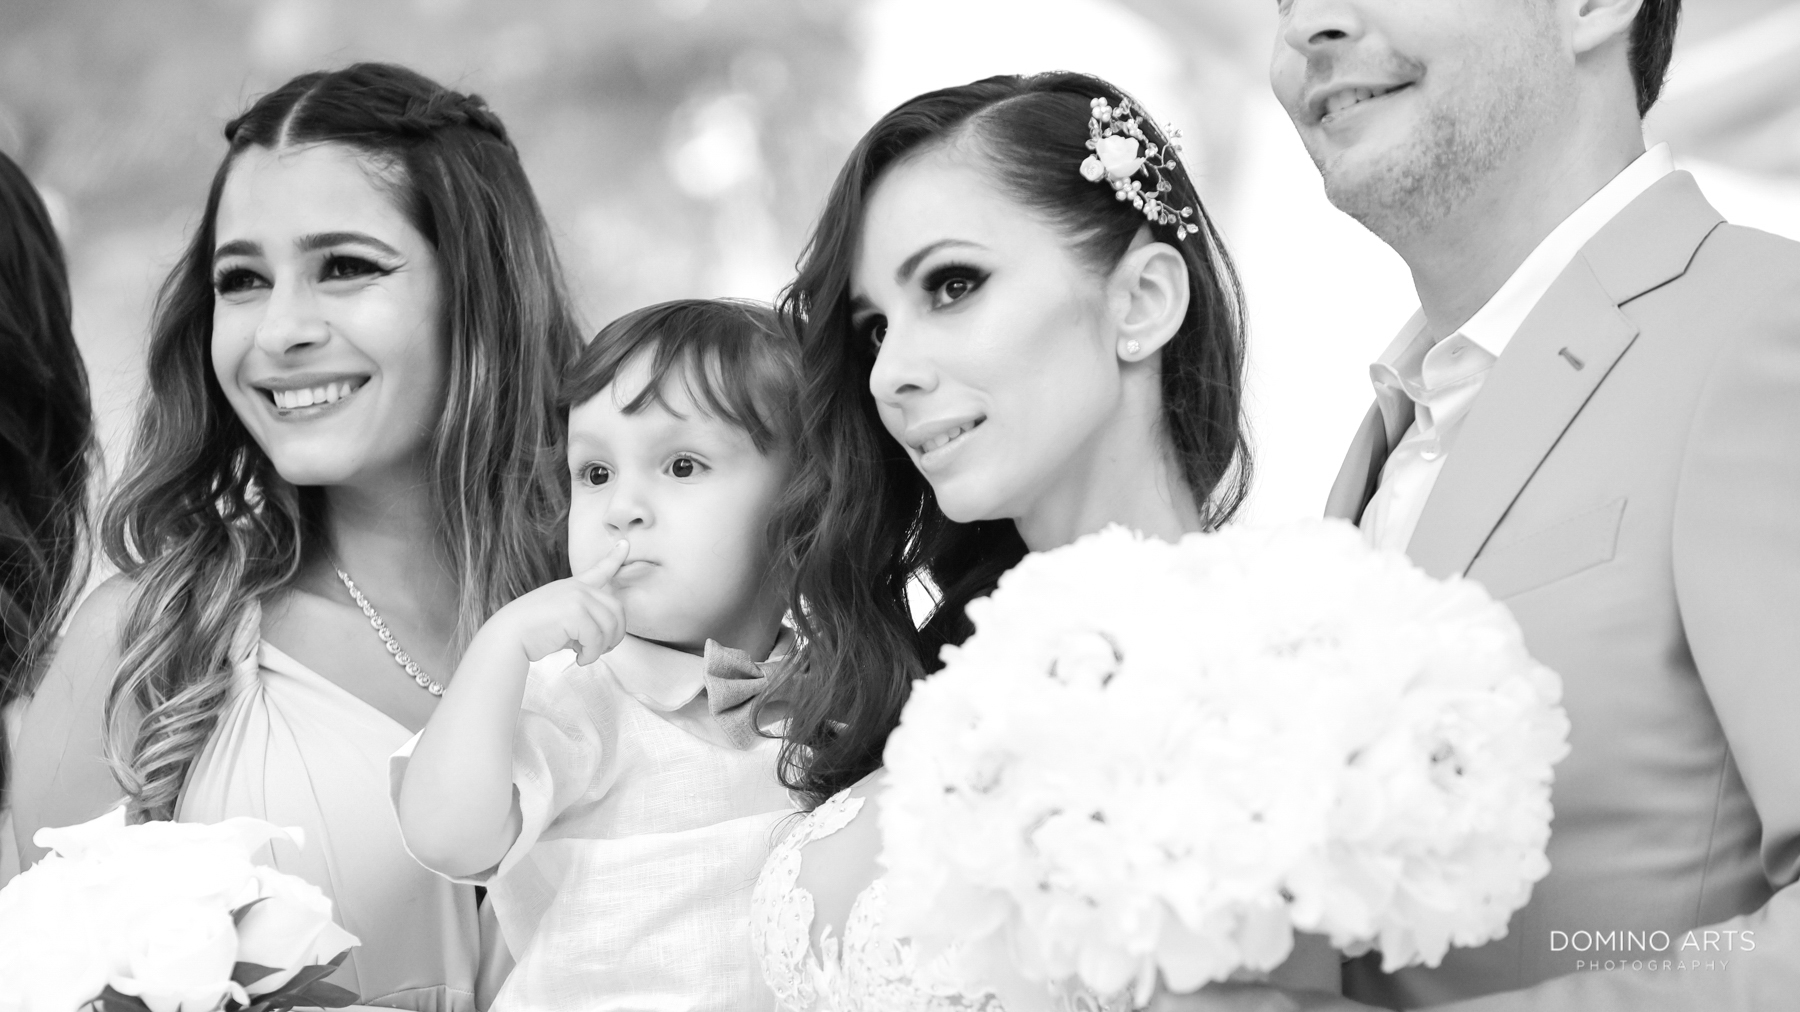 Family black and white photography at Luxury Destination Beach Wedding Photography at Faena Hotel